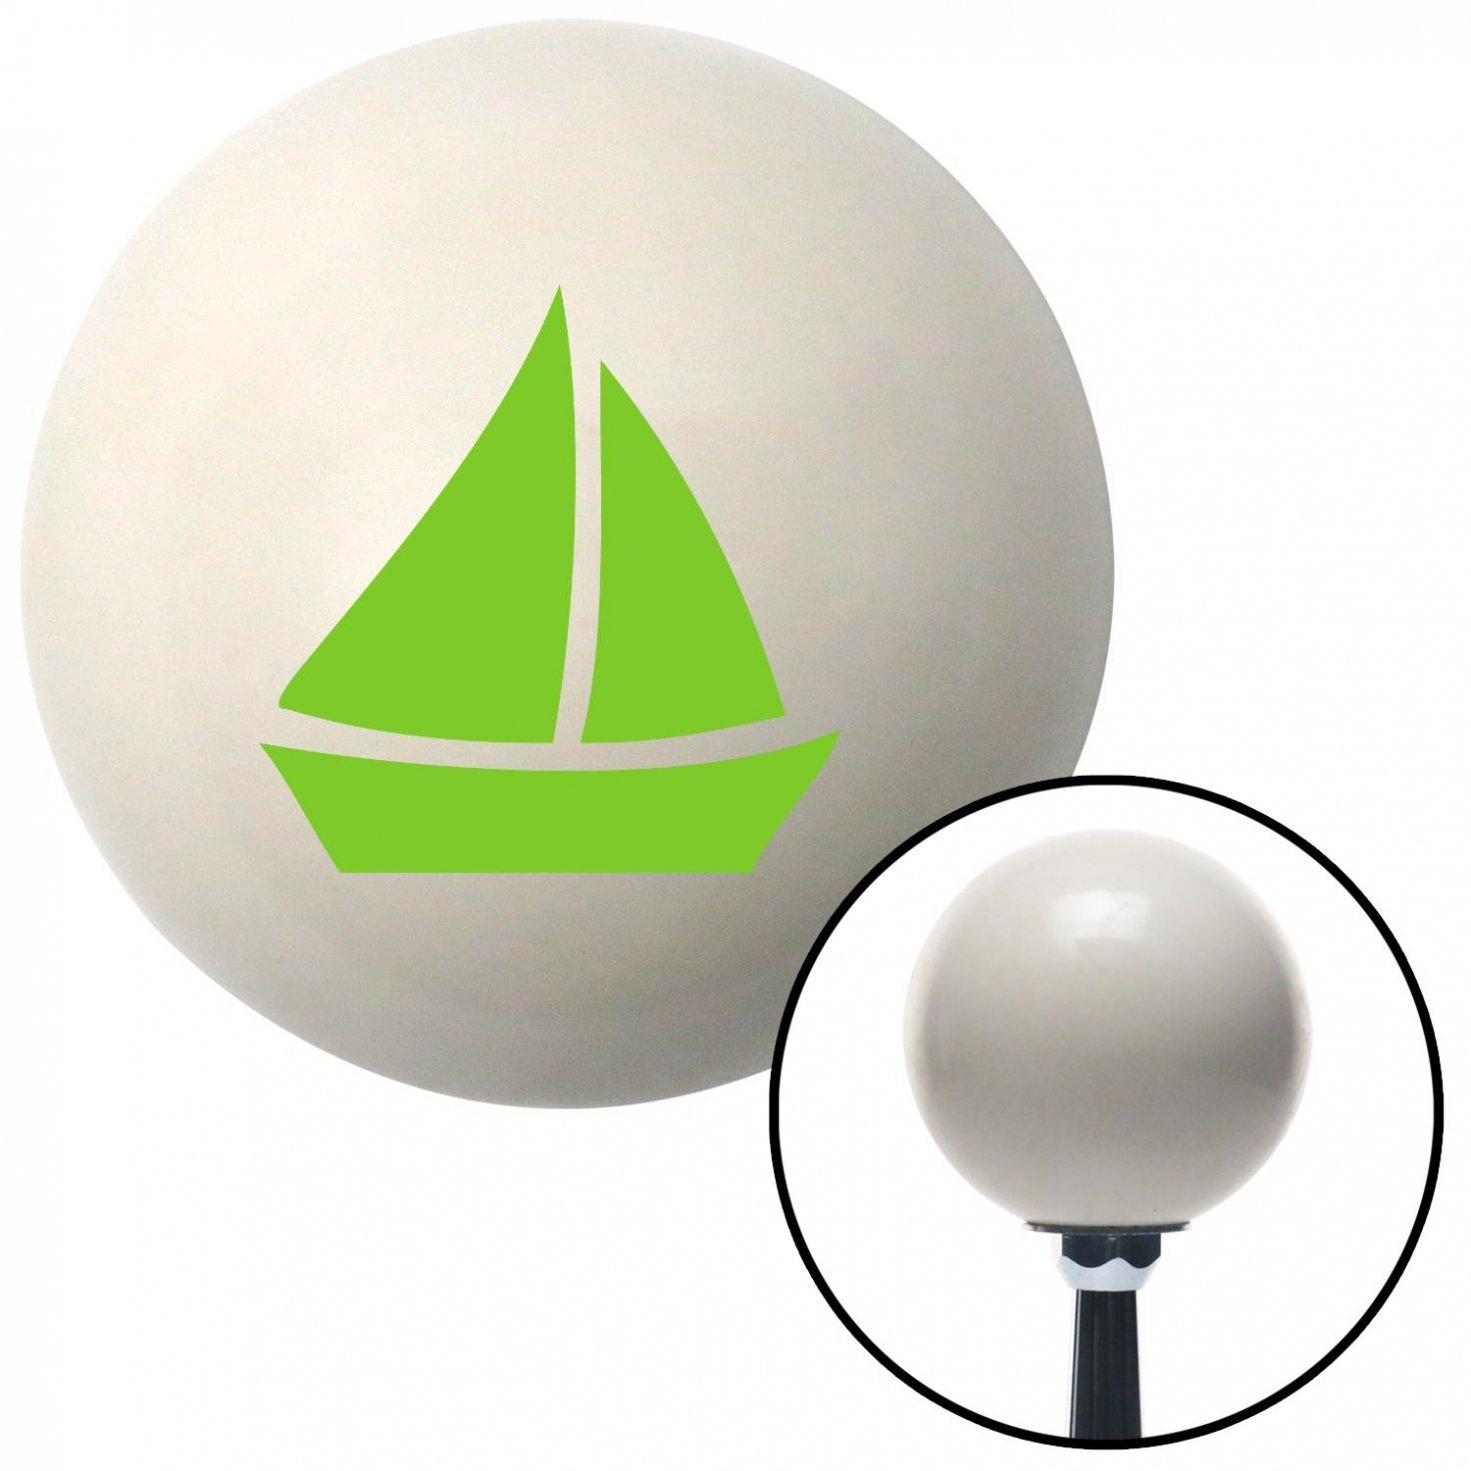 American Shifter 35109 Ivory Shift Knob with 16mm x 1.5 Insert Green Sail Boat 2